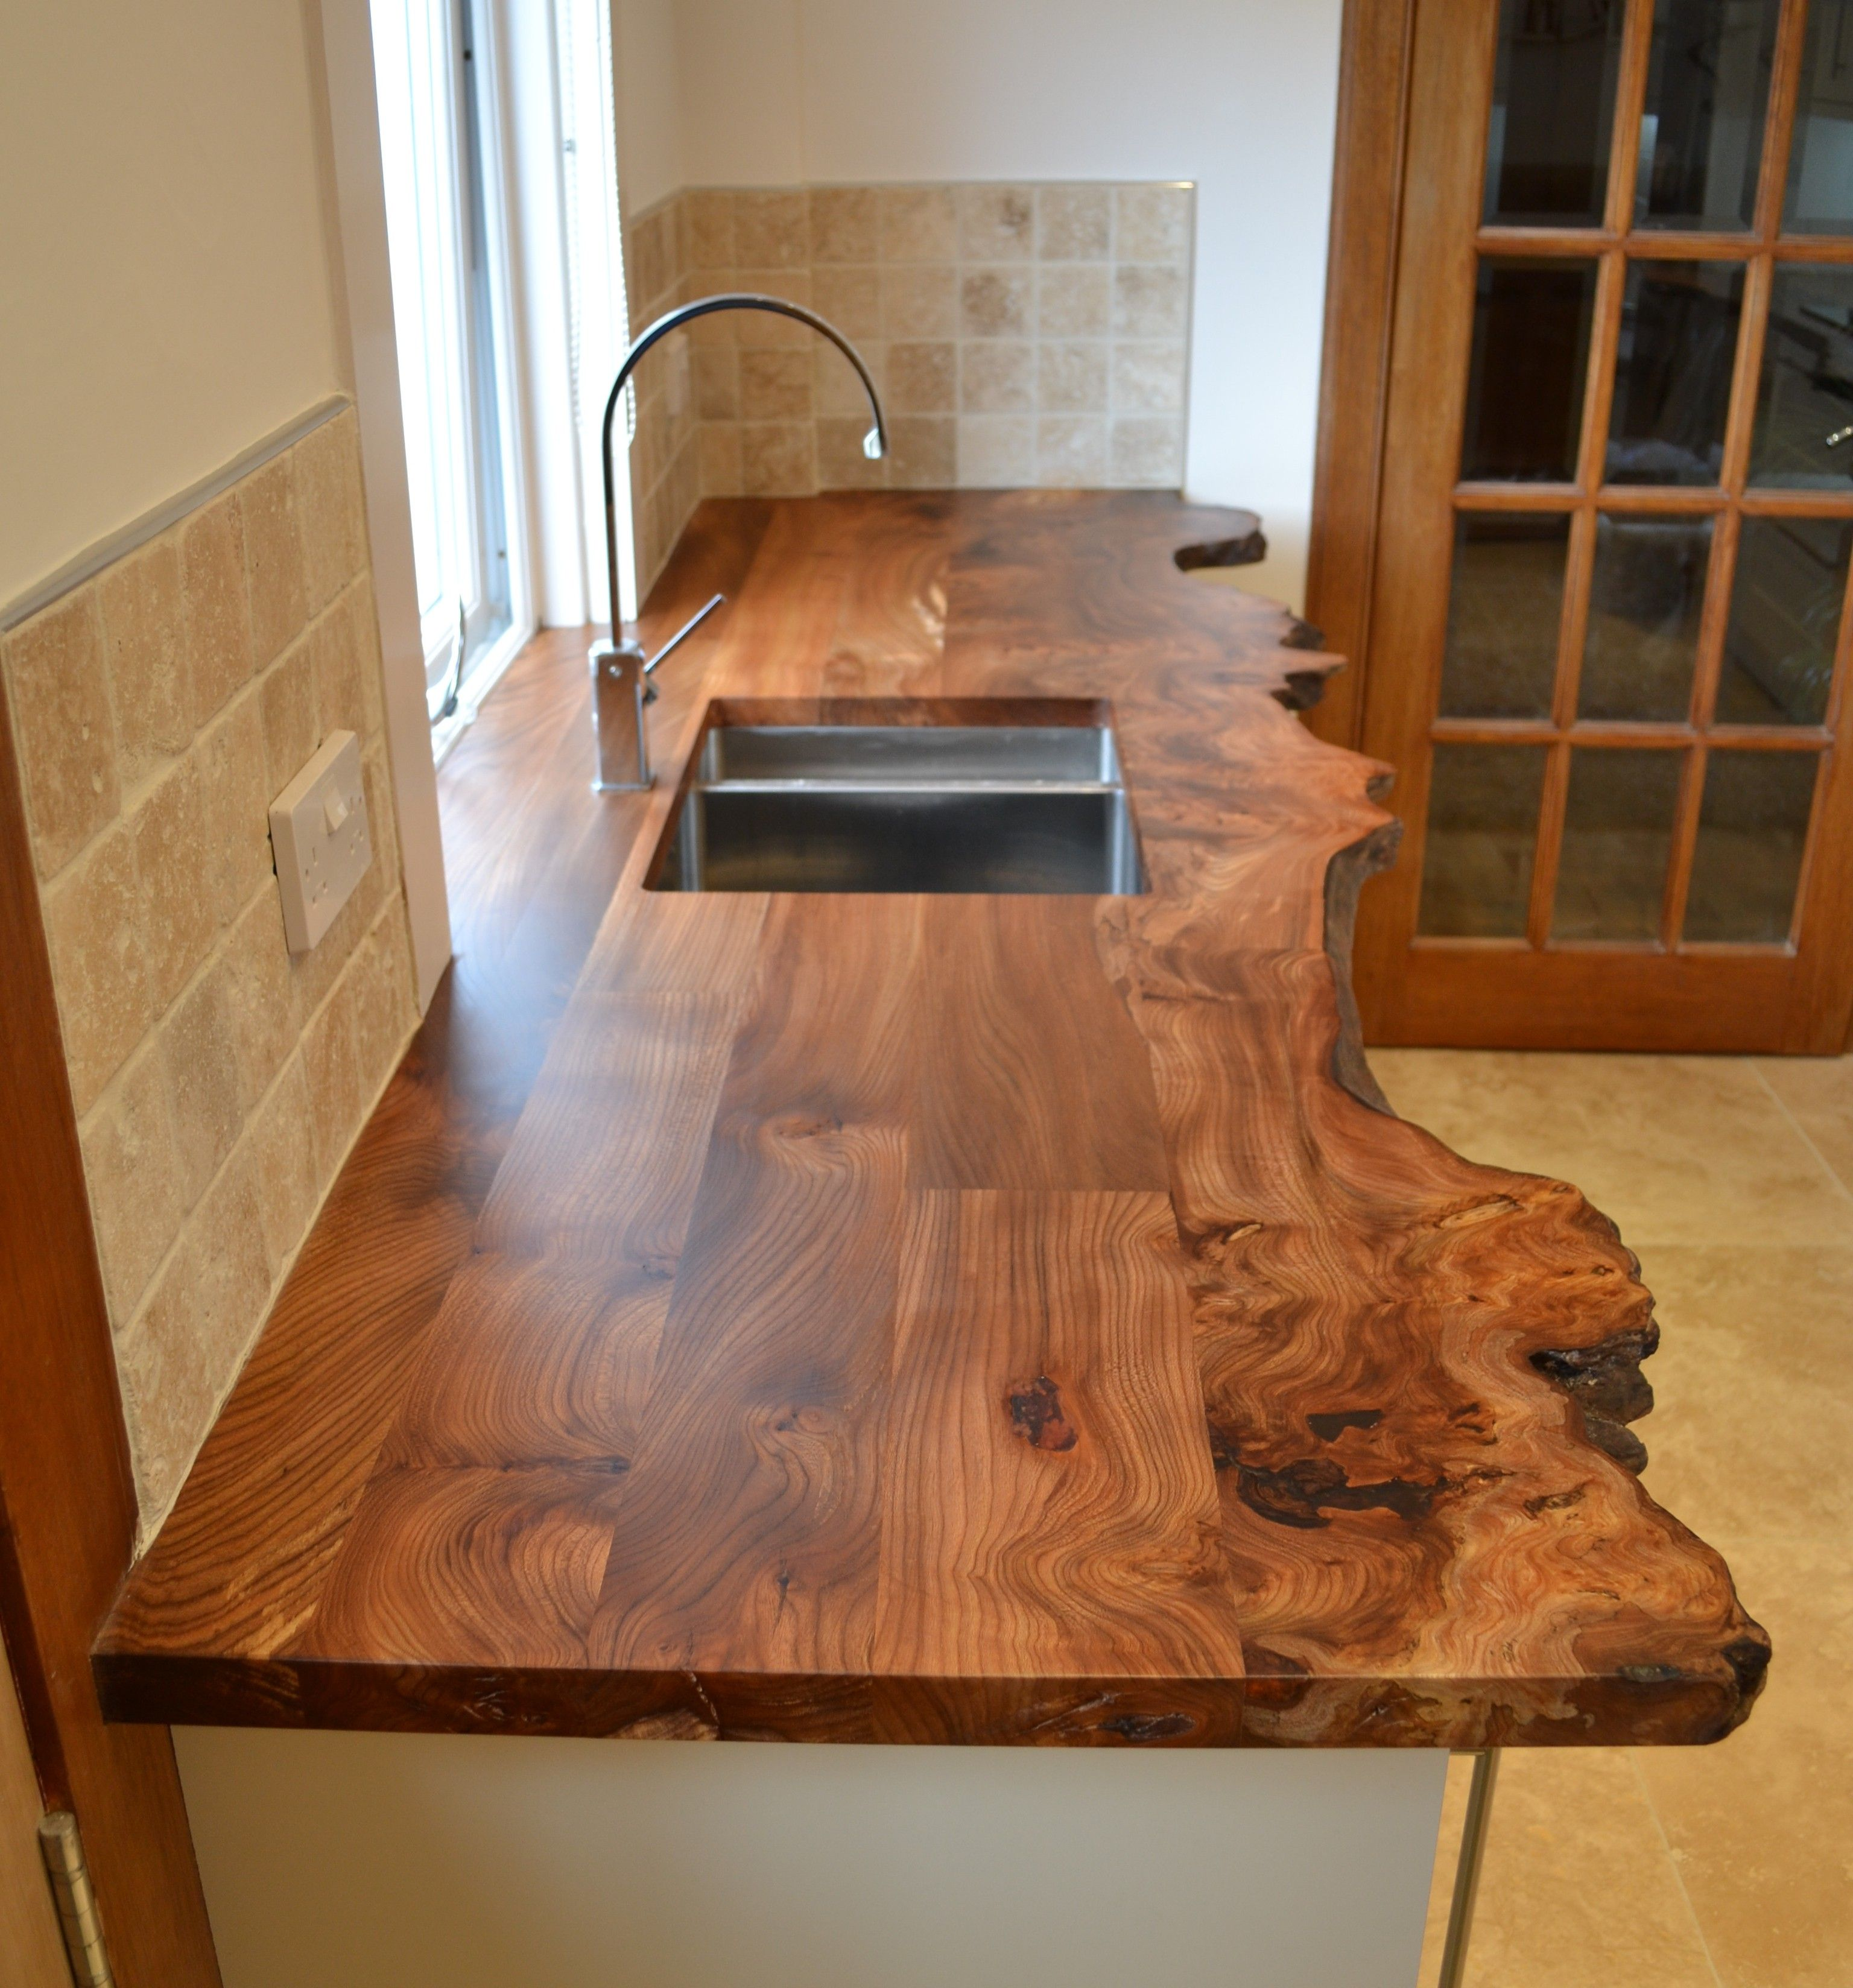 Images Of Kitchen Worktops Google Search Kitchen Worktop Wood Worktop Rustic Kitchen